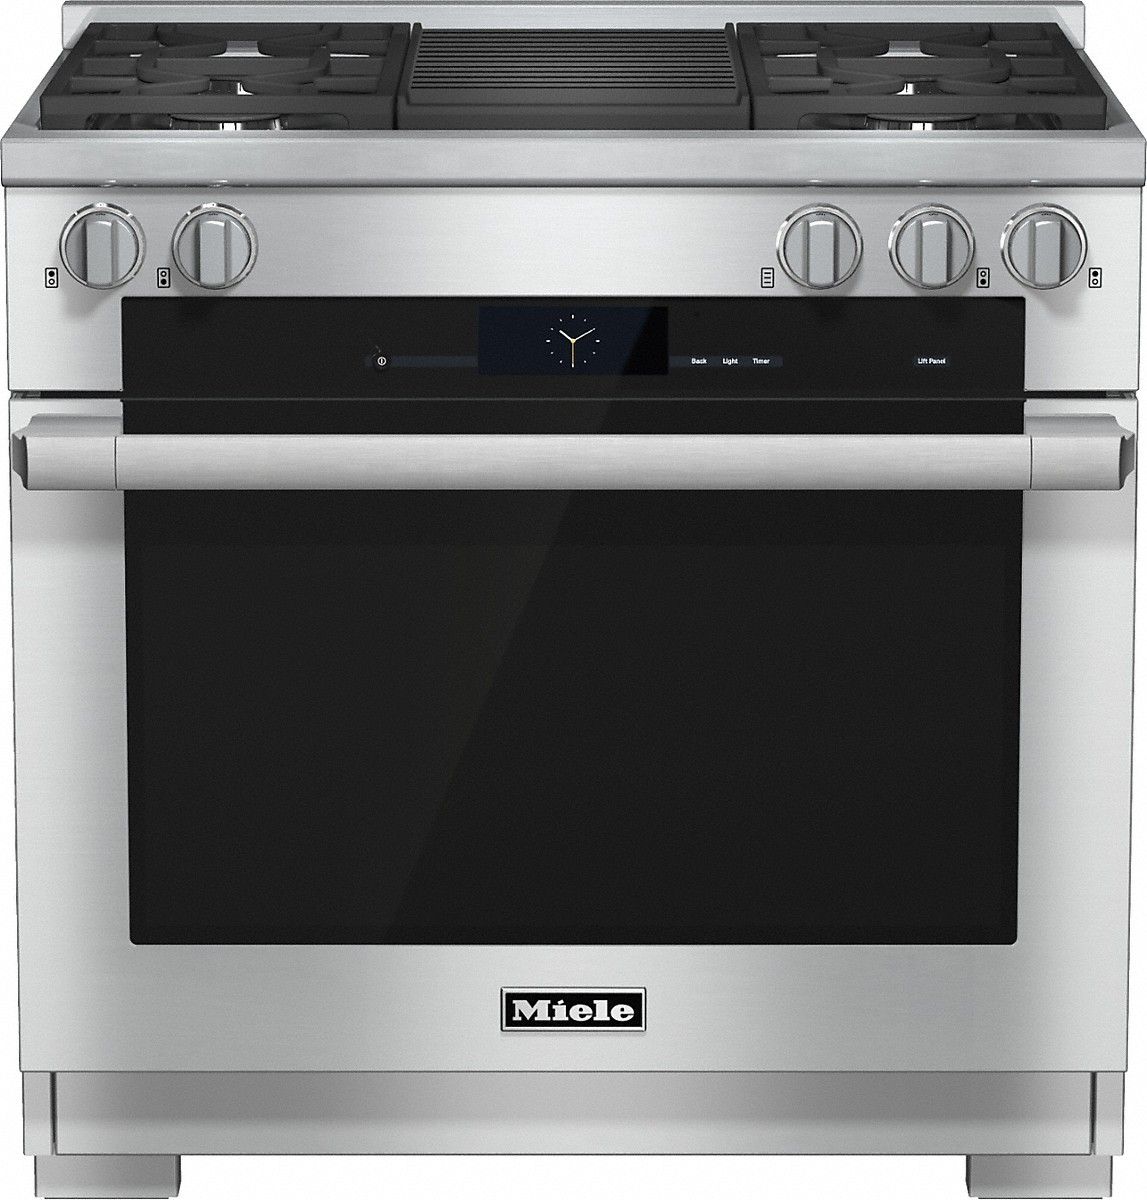 "Miele 36"" Duel Fuel Range with Built-In Barbecue  - Natural Gas         HR1935 DF  GR"